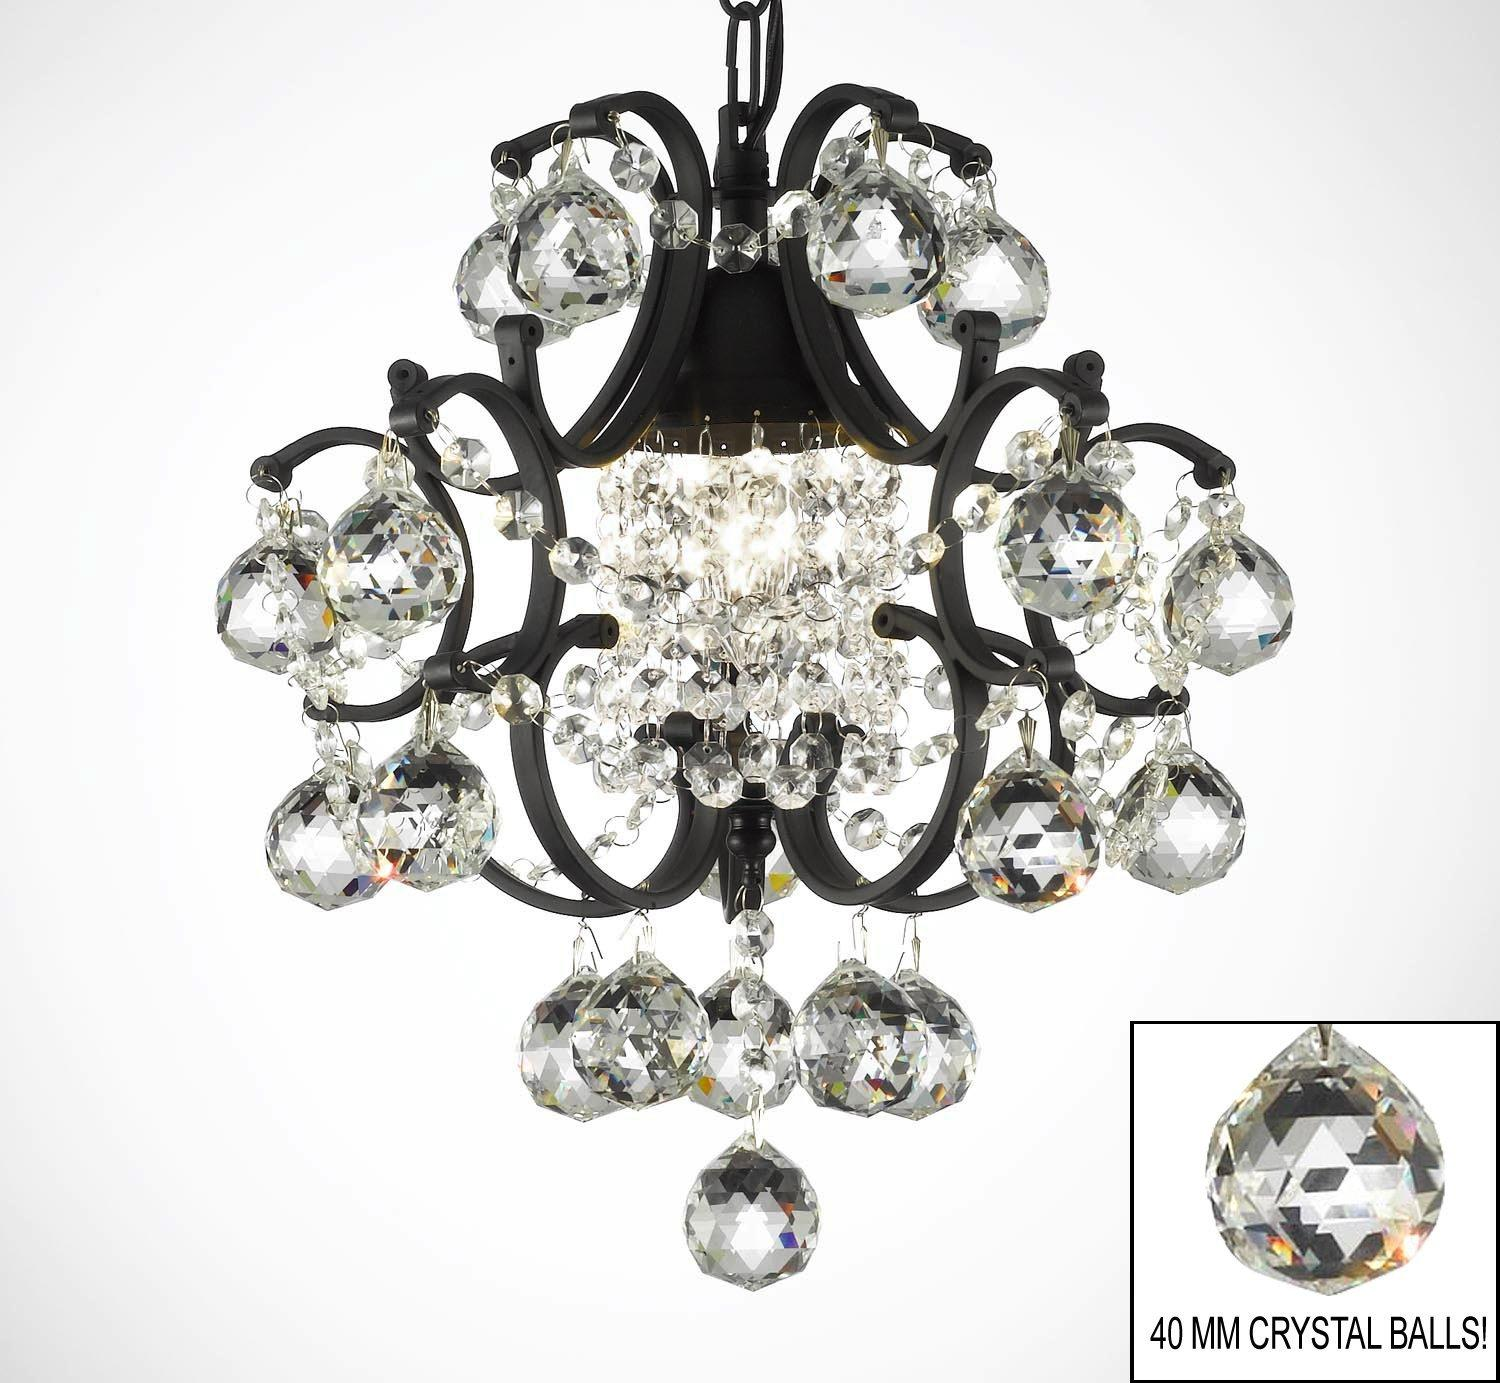 Wrought Iron Mini Crystal Chandelier Lighting With Crystal Balls